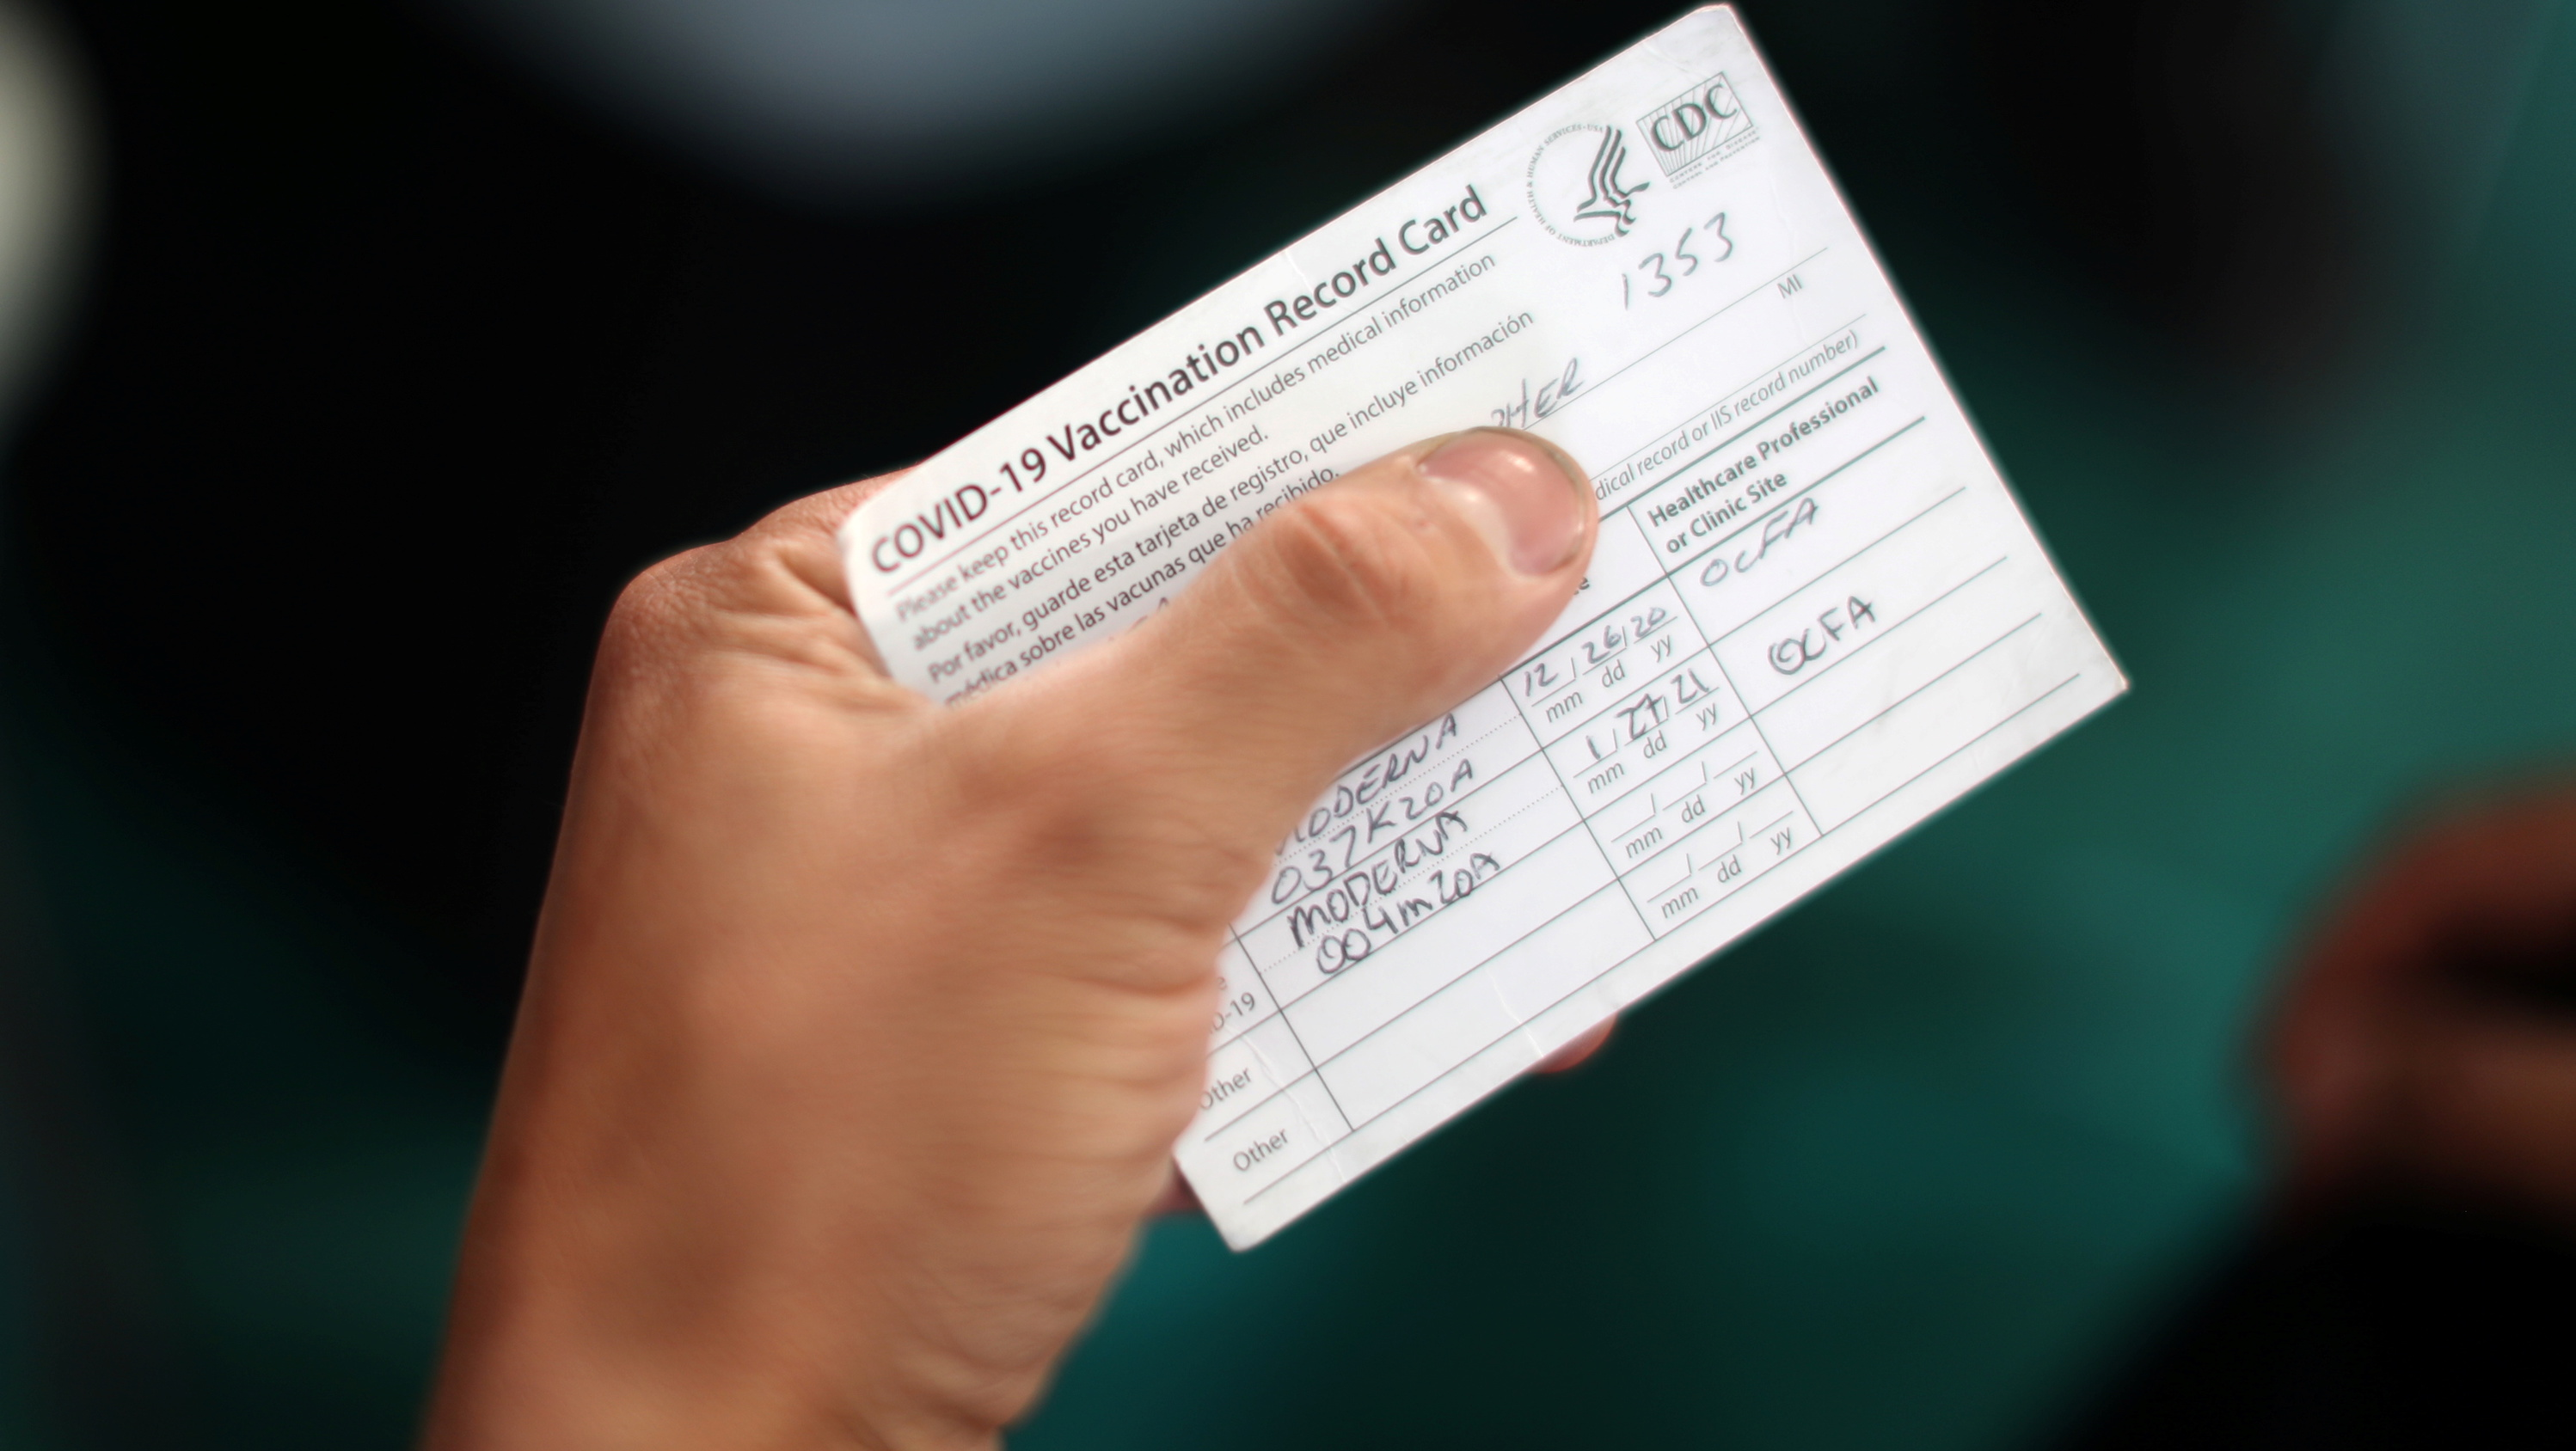 hand holding CDC covid vaccination card